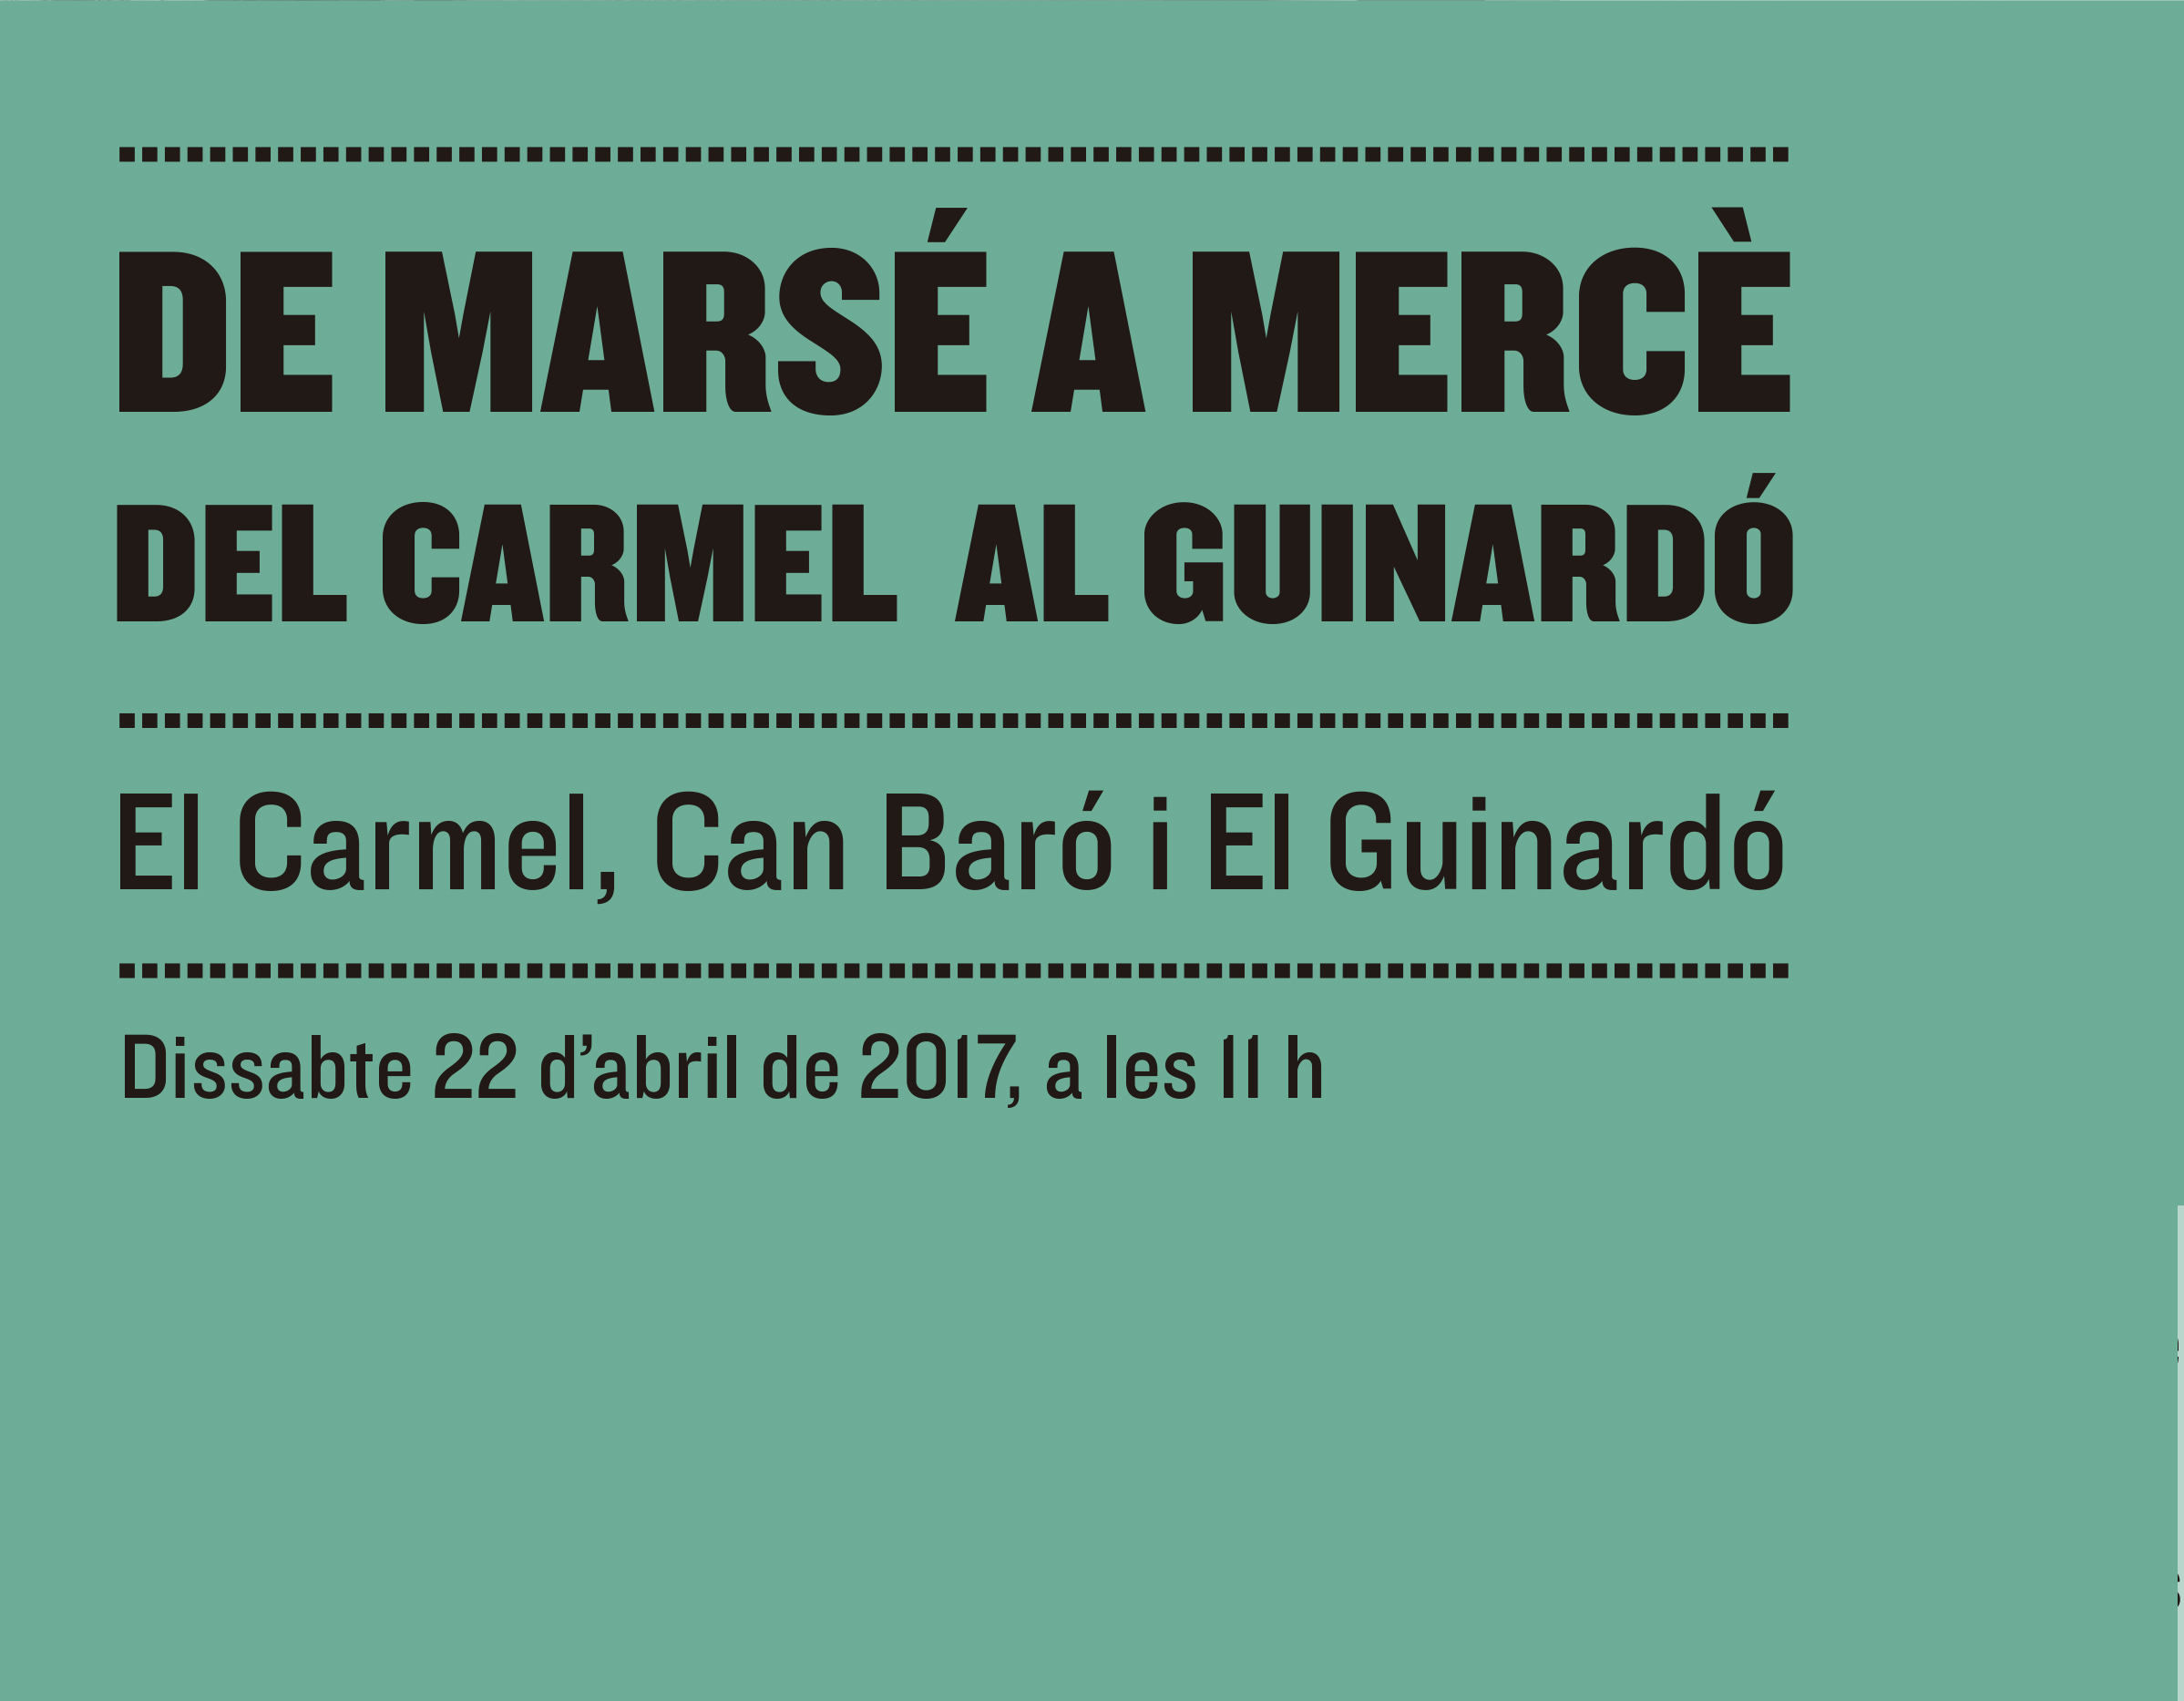 cartell-17.indd